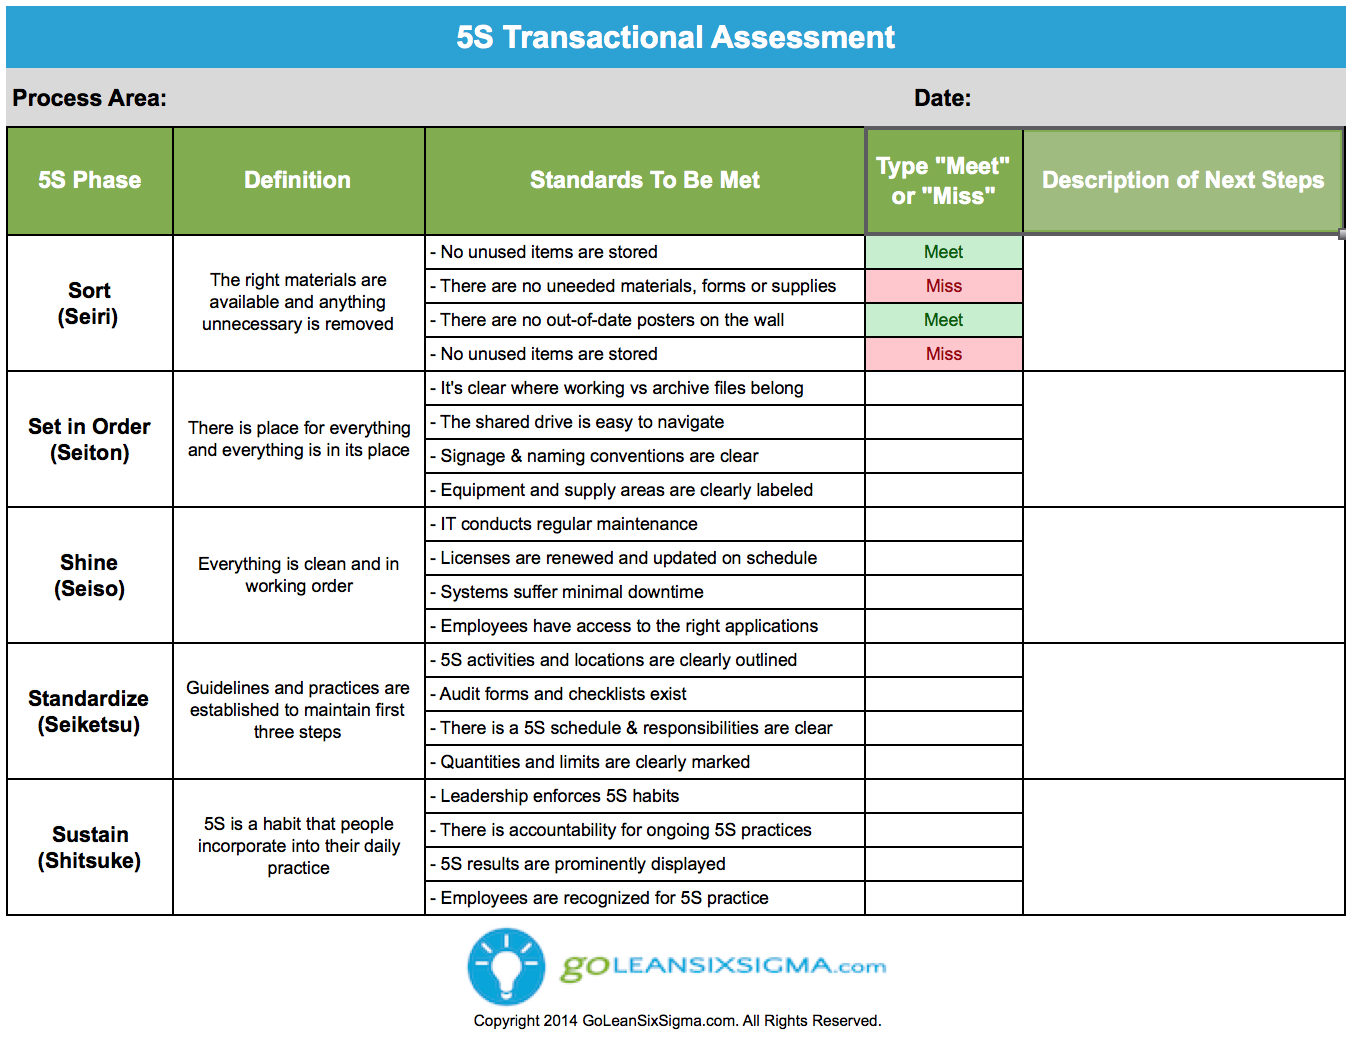 Free Template S Transactional Assessment From GoleansixsigmaCom